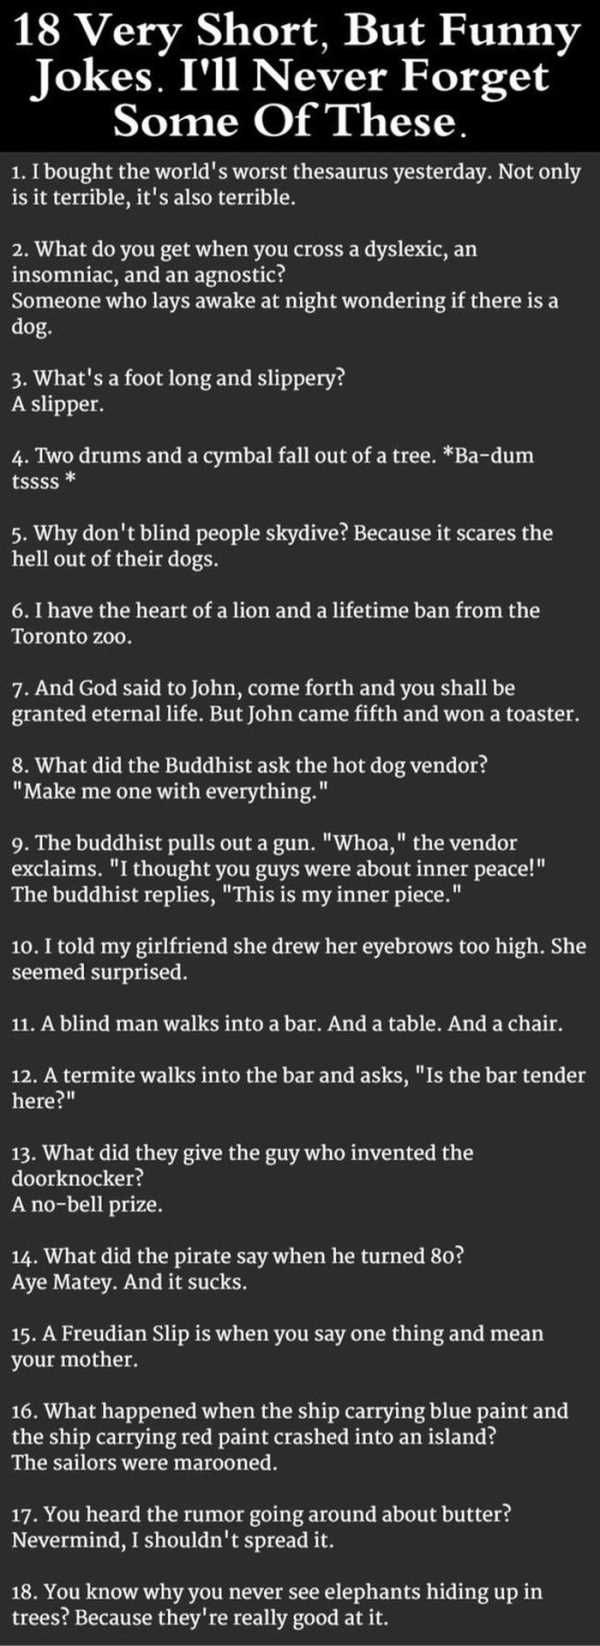 Jokes That Are Funny: 15 Jokes And Short Stories